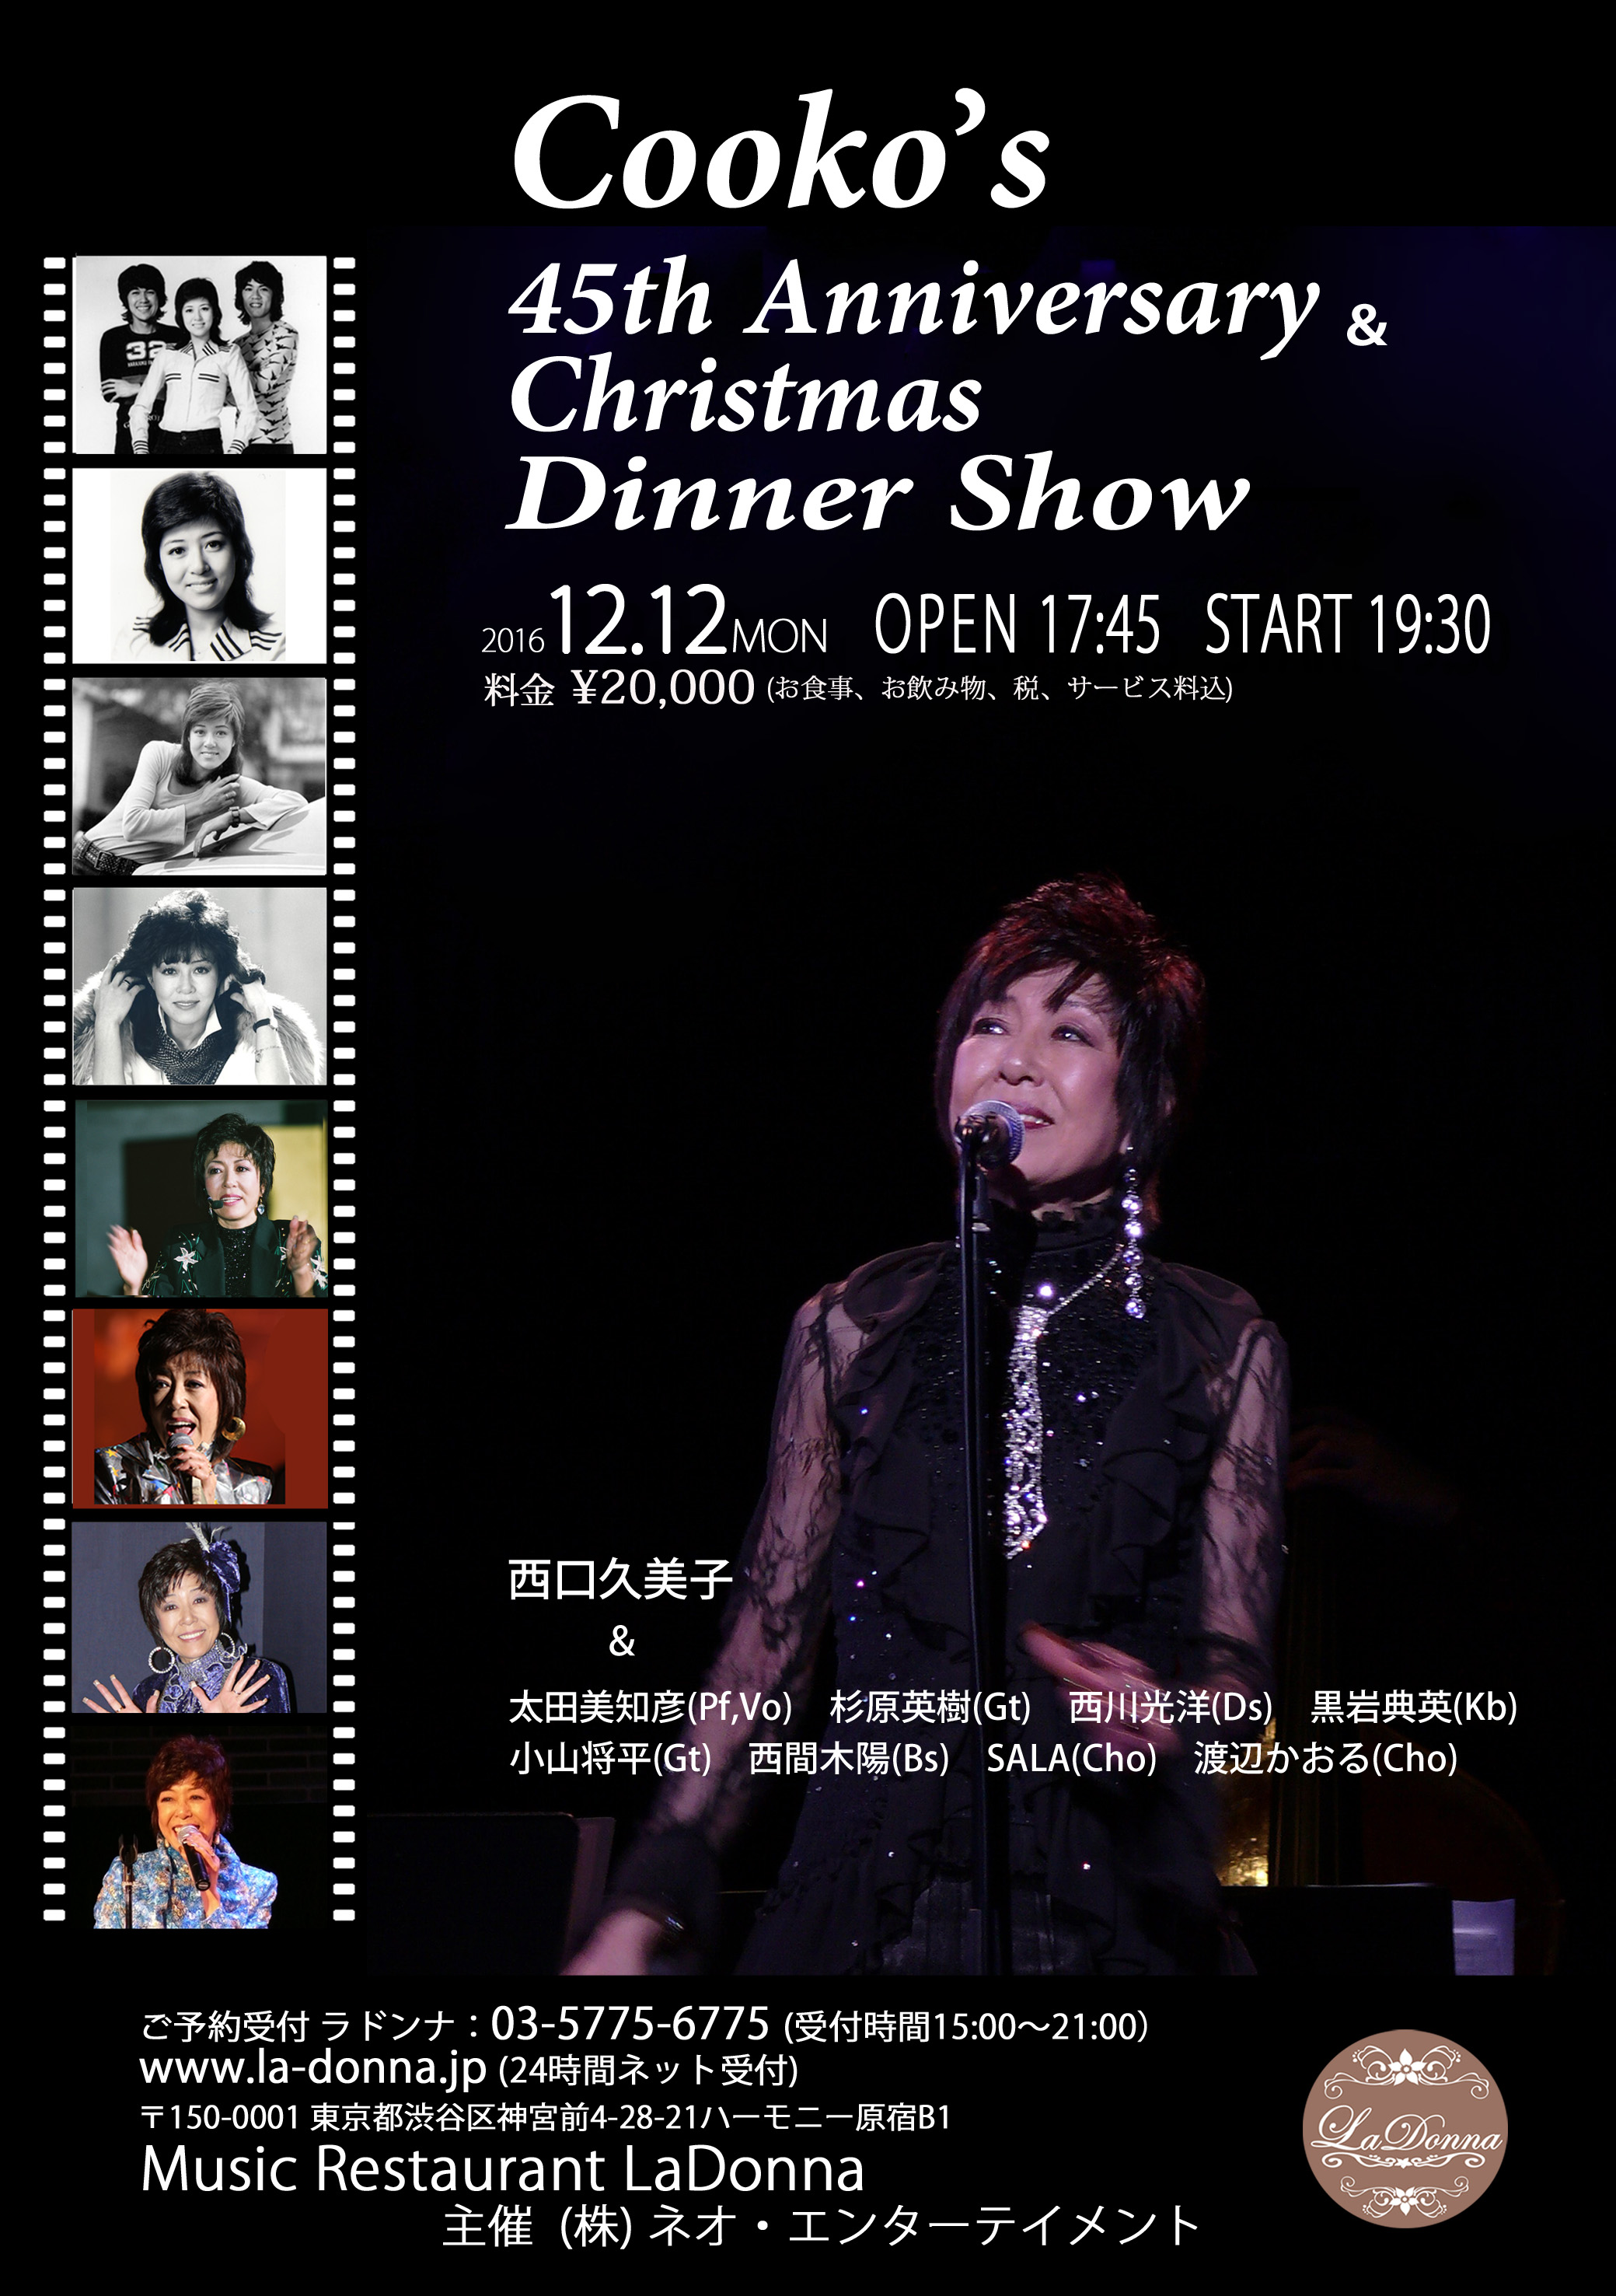 西口久美子 Cooko's 45th Anniversary & Christmas Dinner Show 2016